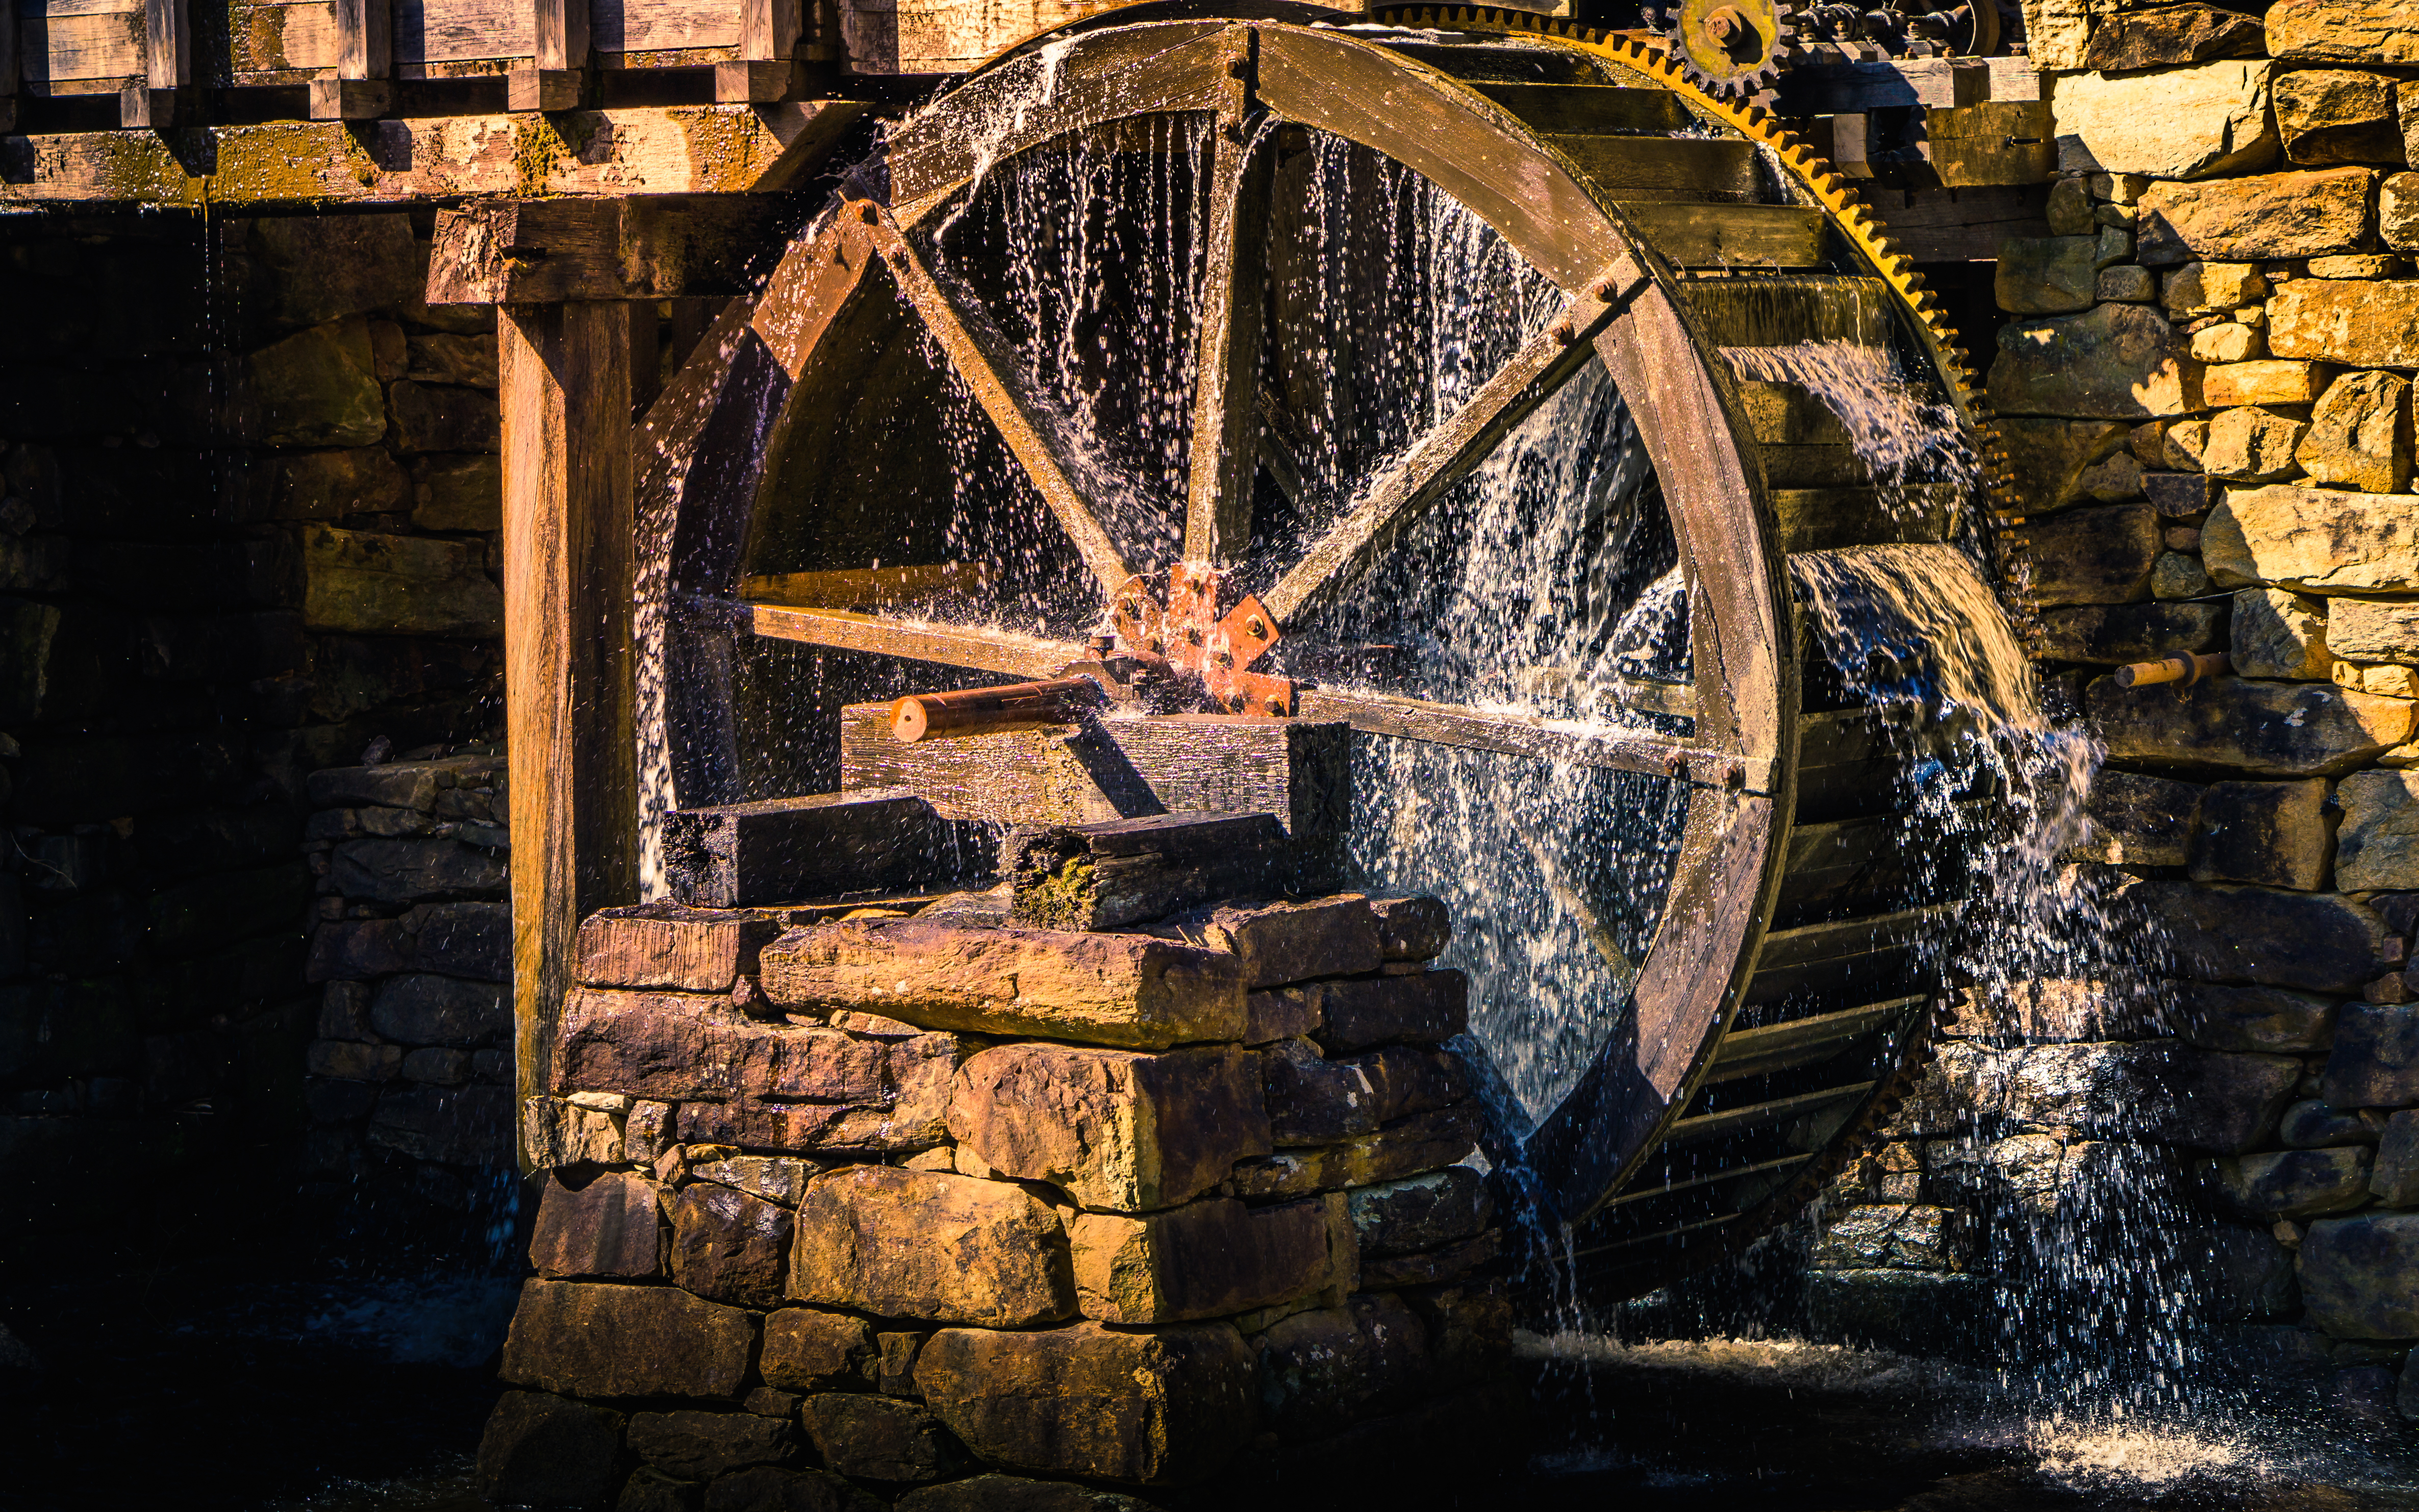 Douglas Antionne Gartrell by Shutterstock, automation old fashioned watermill